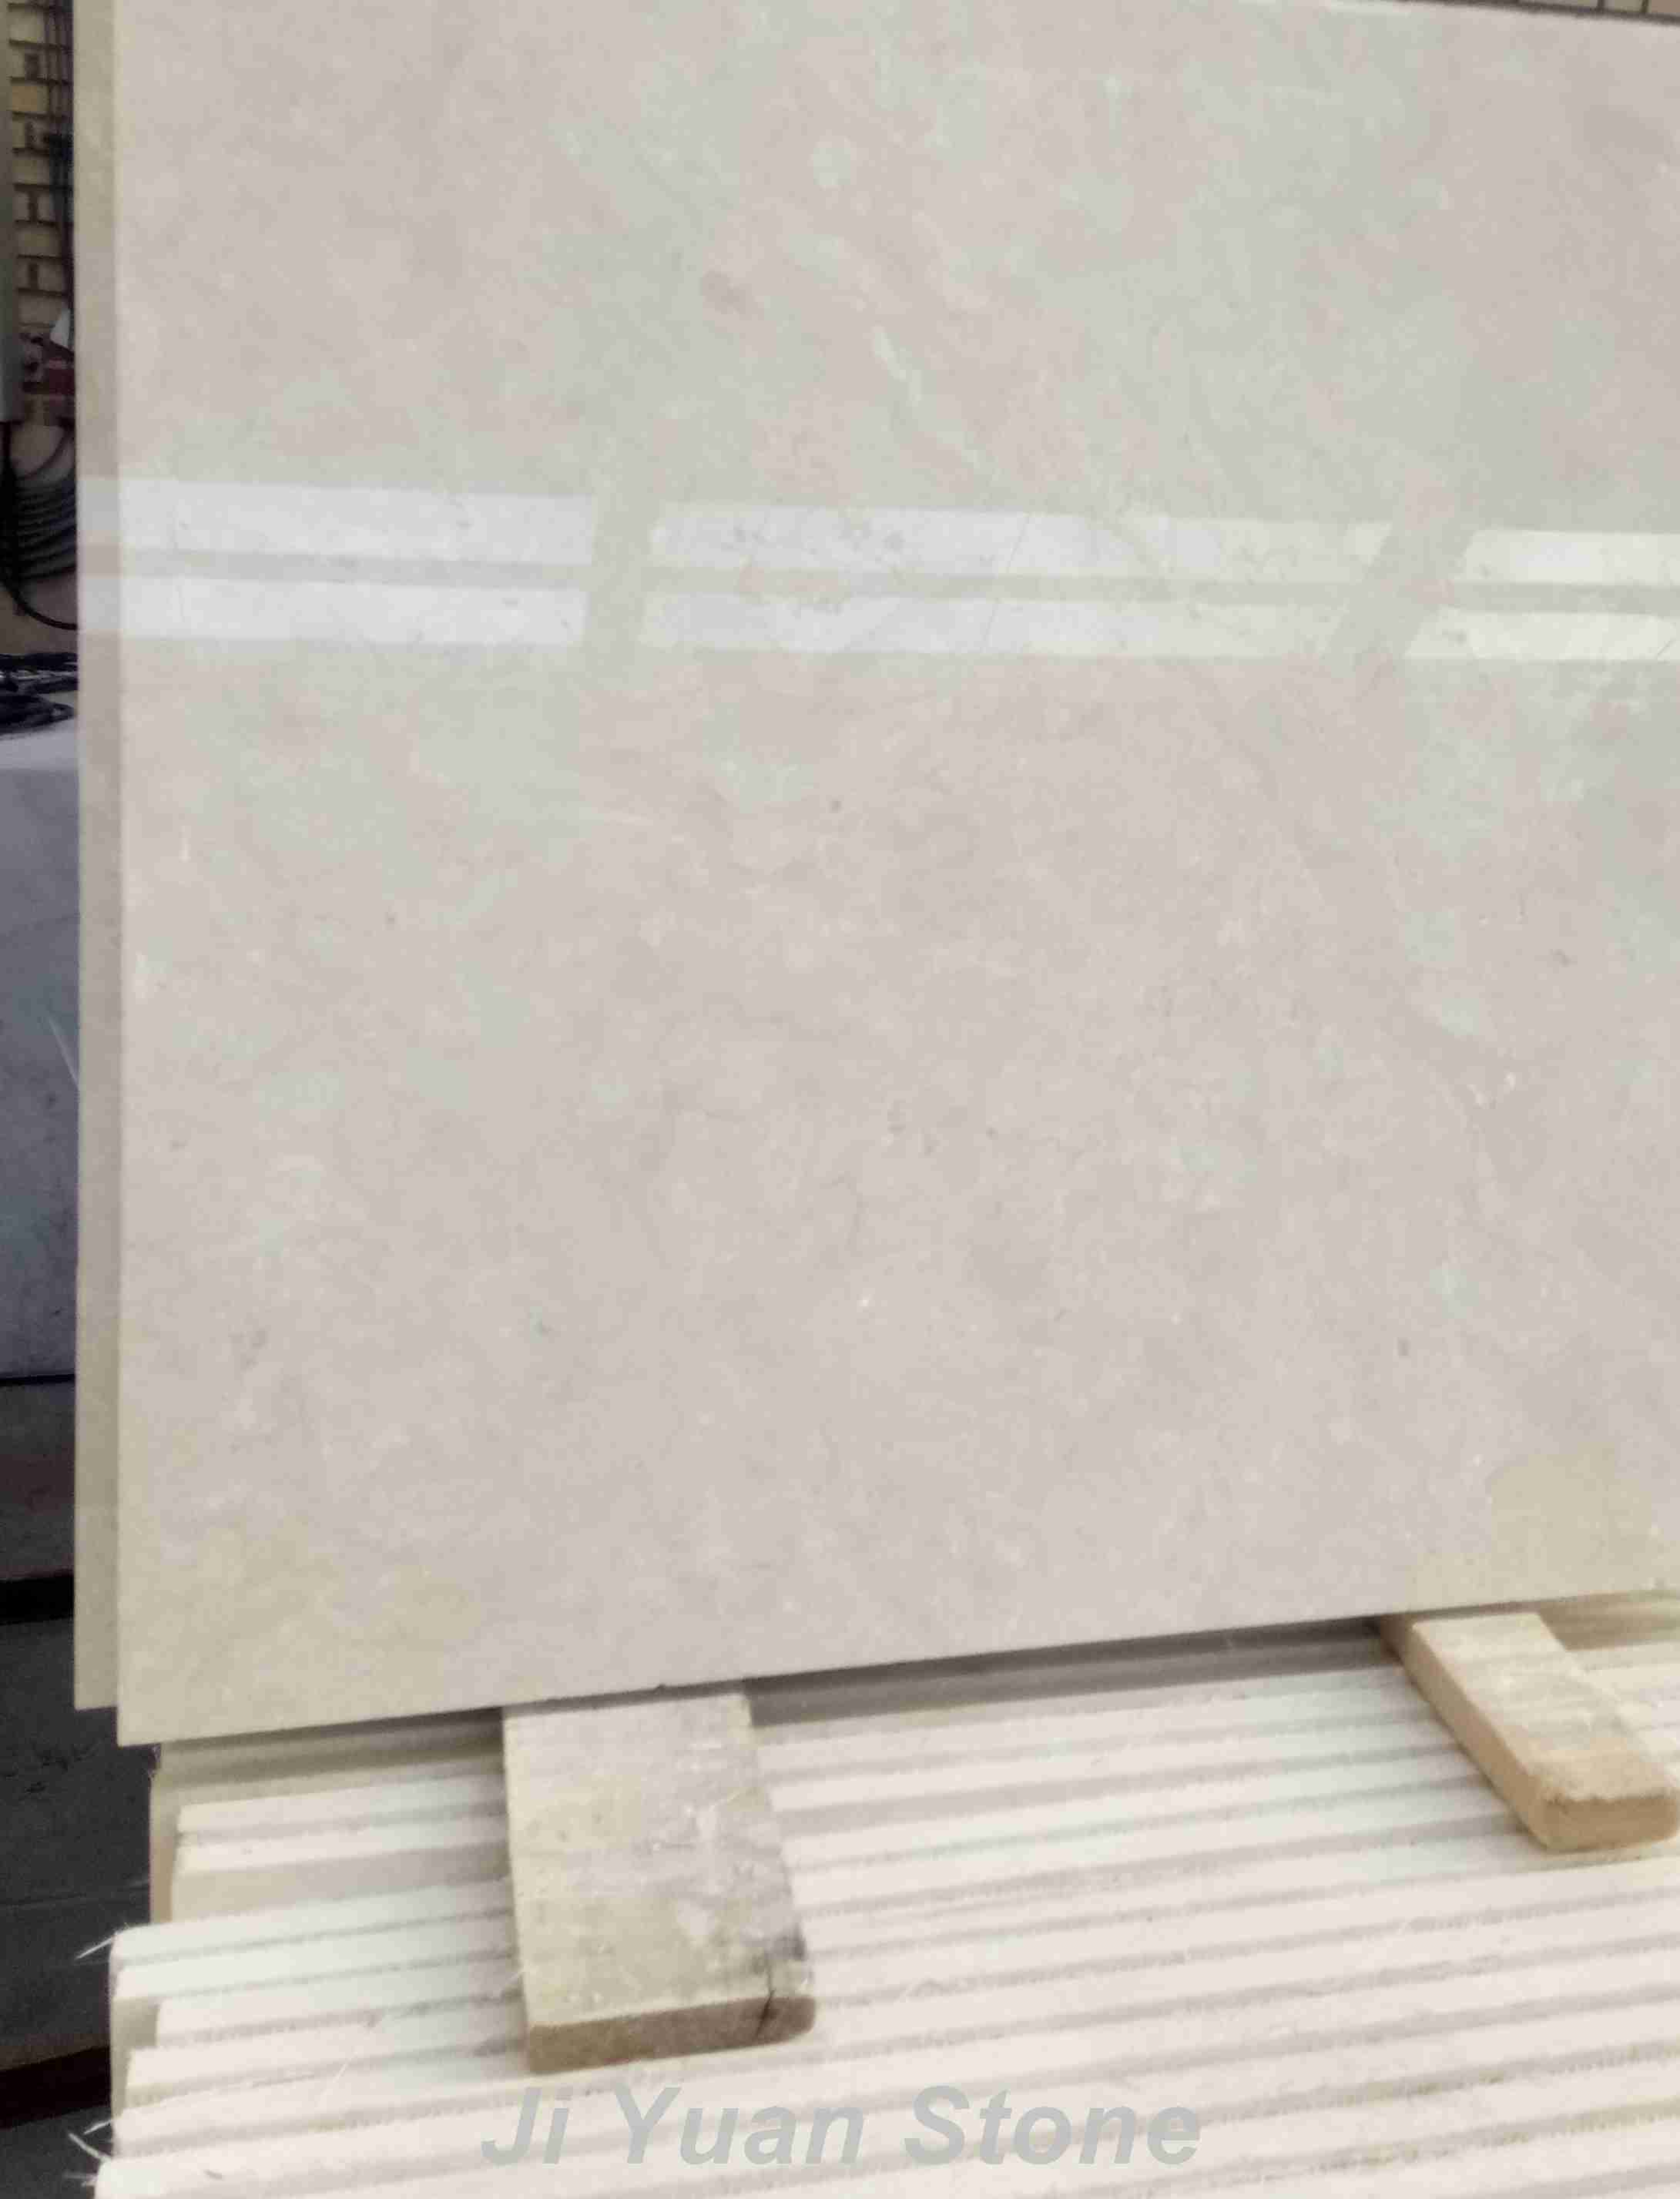 tumbled limestone tiles,limestone supplier,white limestone tile,limestone pieces,line stone,limestone homes,stone supplier,shell limestone,limestone quarry